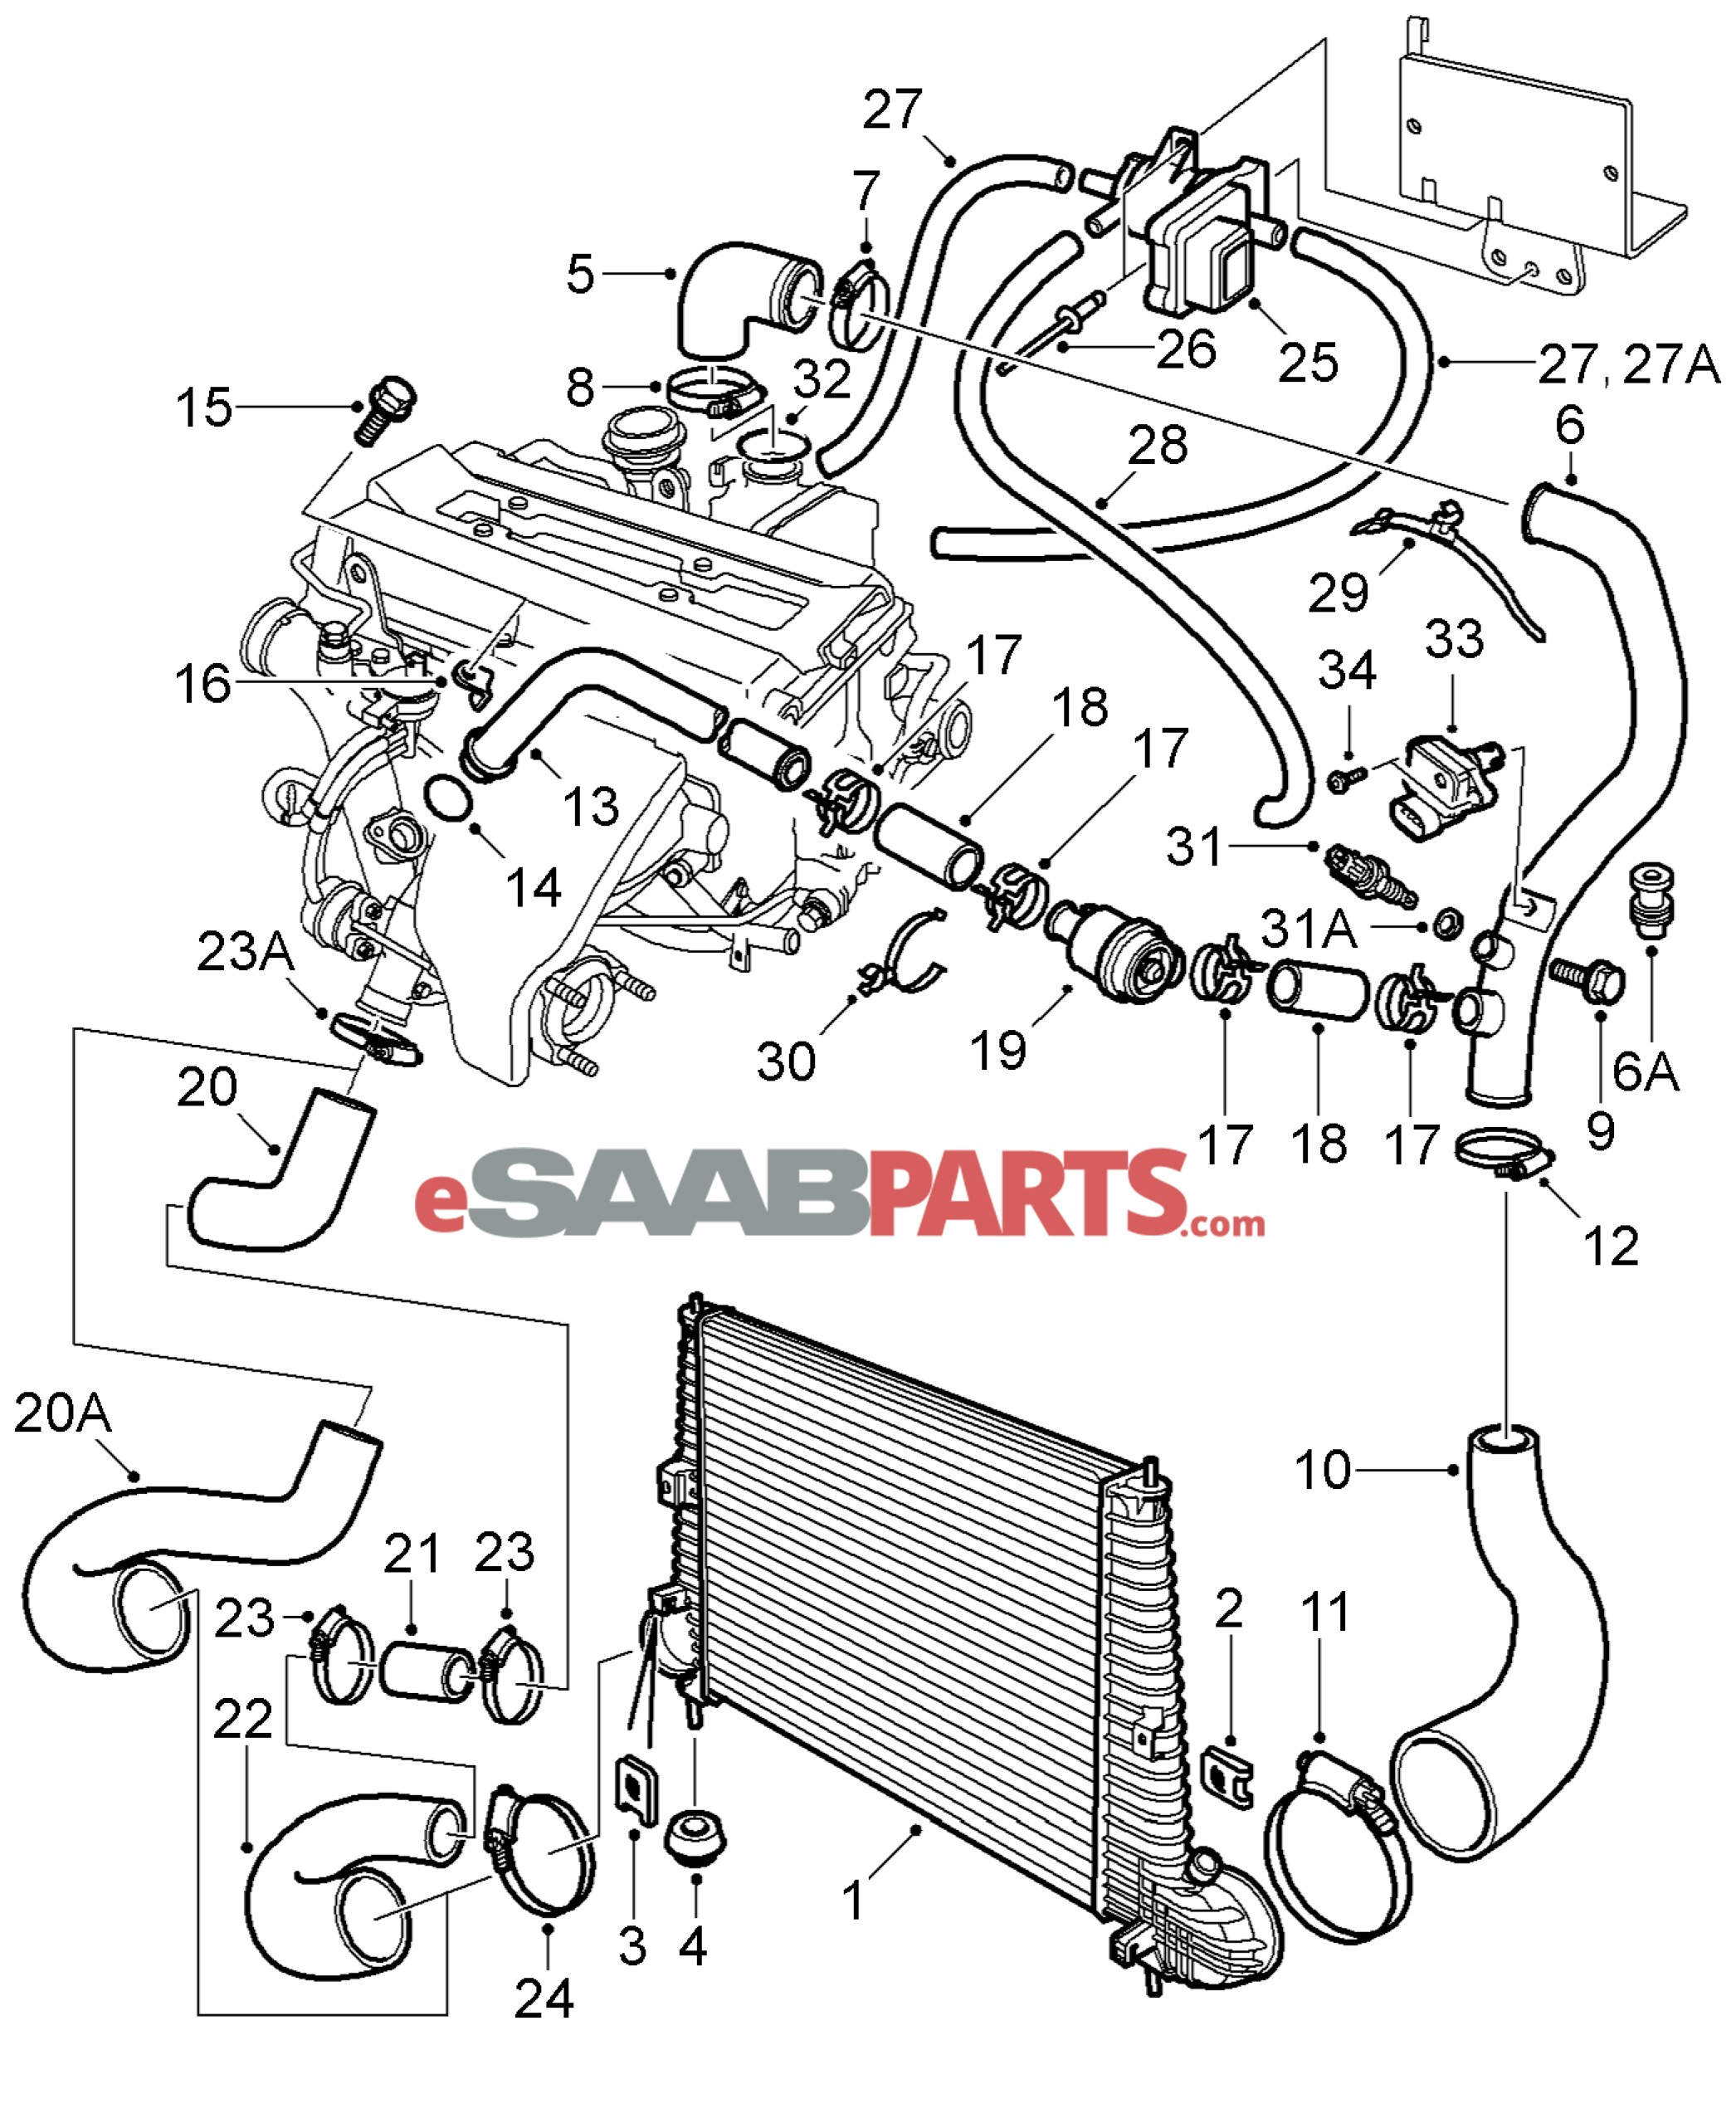 2007 Ford Fusion Fuse Box Location Wiring Library Focus Diagram 2 0 Wire Center U2022 Rh 207 246 123 107